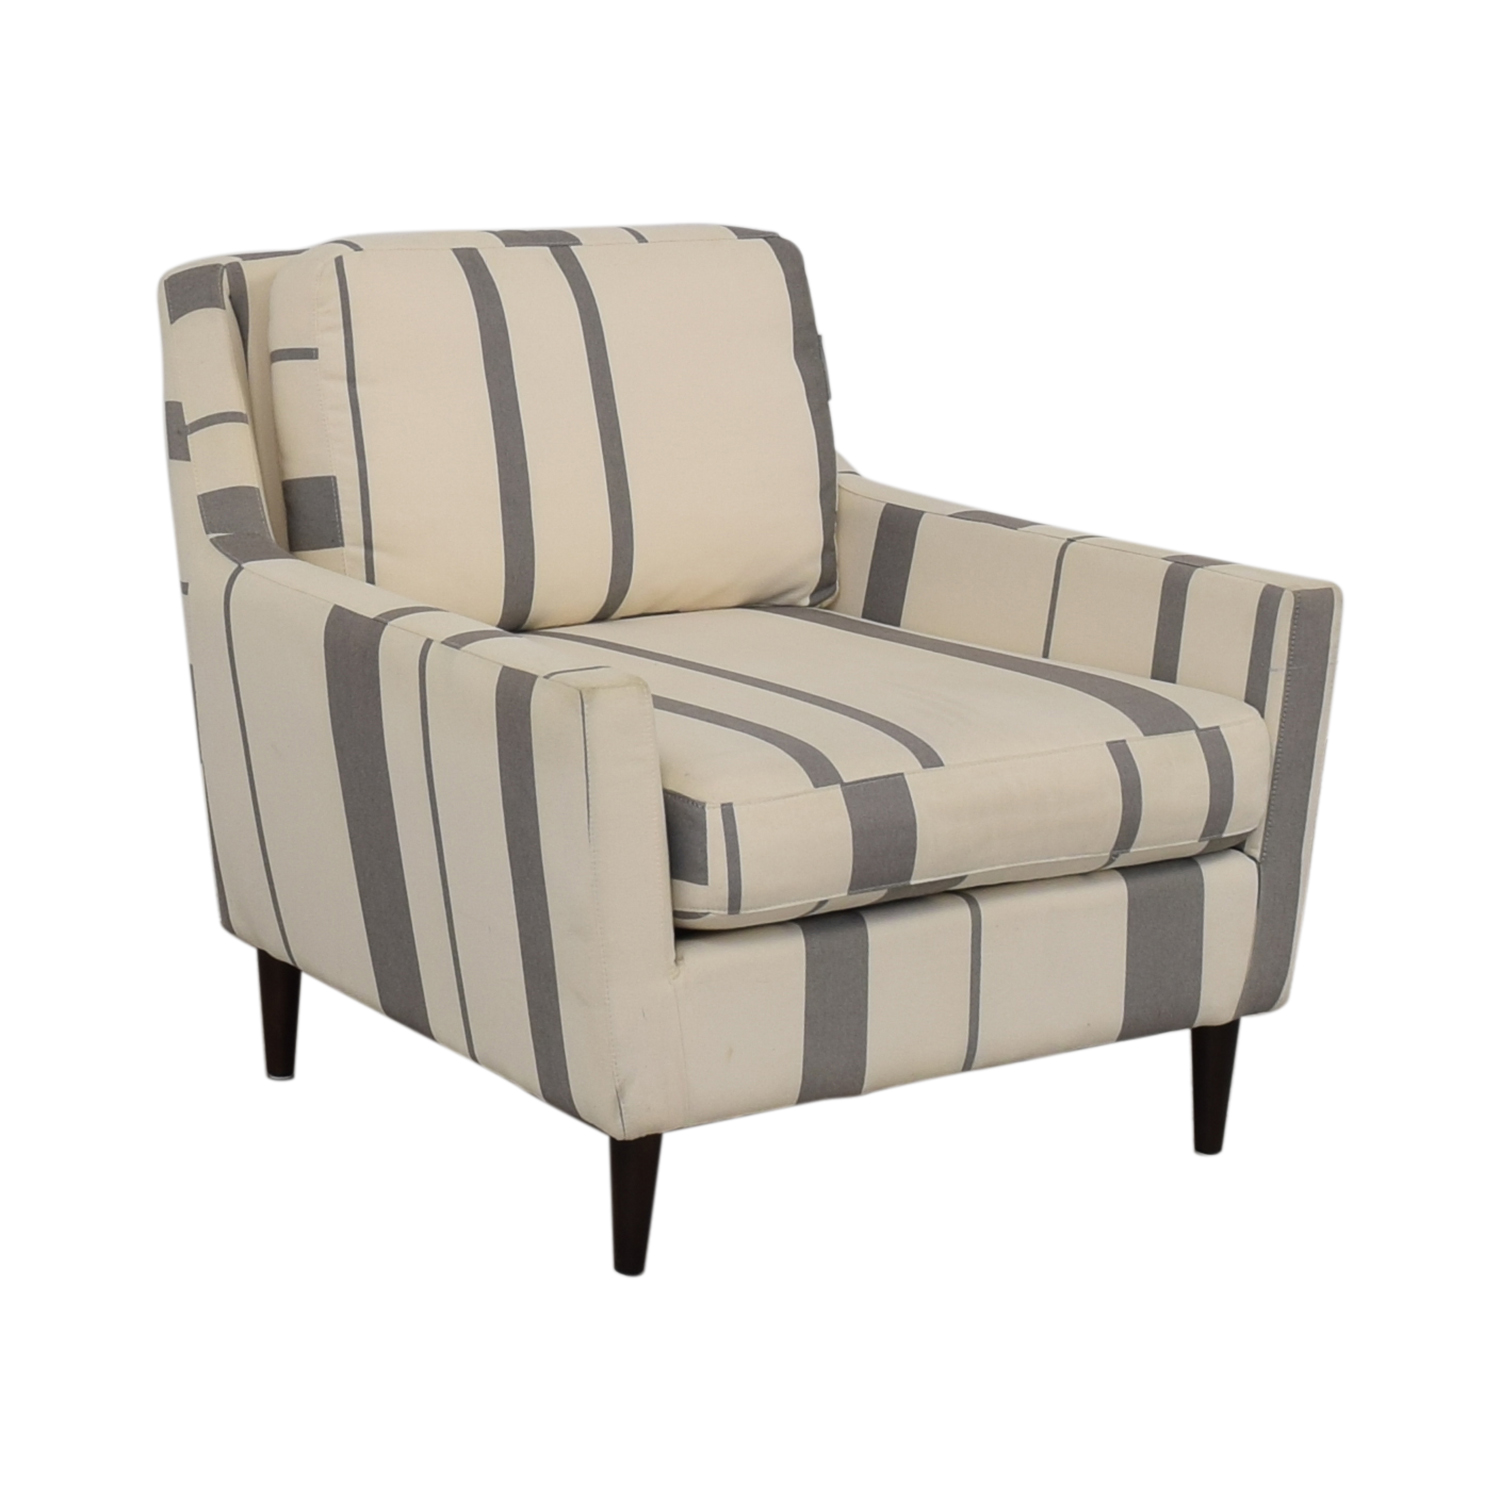 West Elm West Elm Everett Grey and White Striped Accent Chair nyc